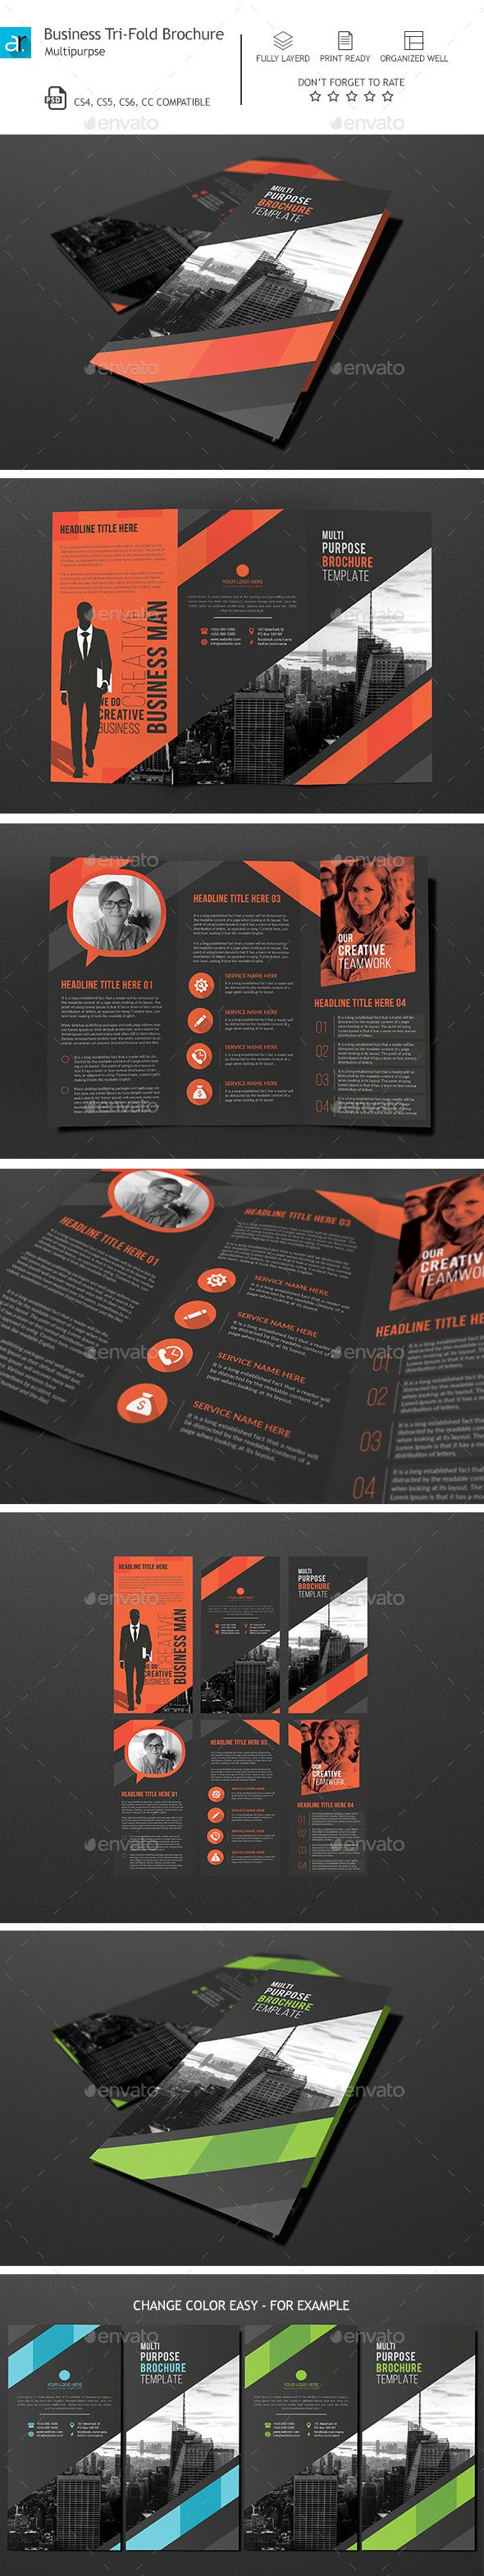 Corporate Tri-Fold Brochure Template PSD. Download here: http://graphicriver.net/item/corporate-trifold-brochure-04/14770964?ref=ksioks